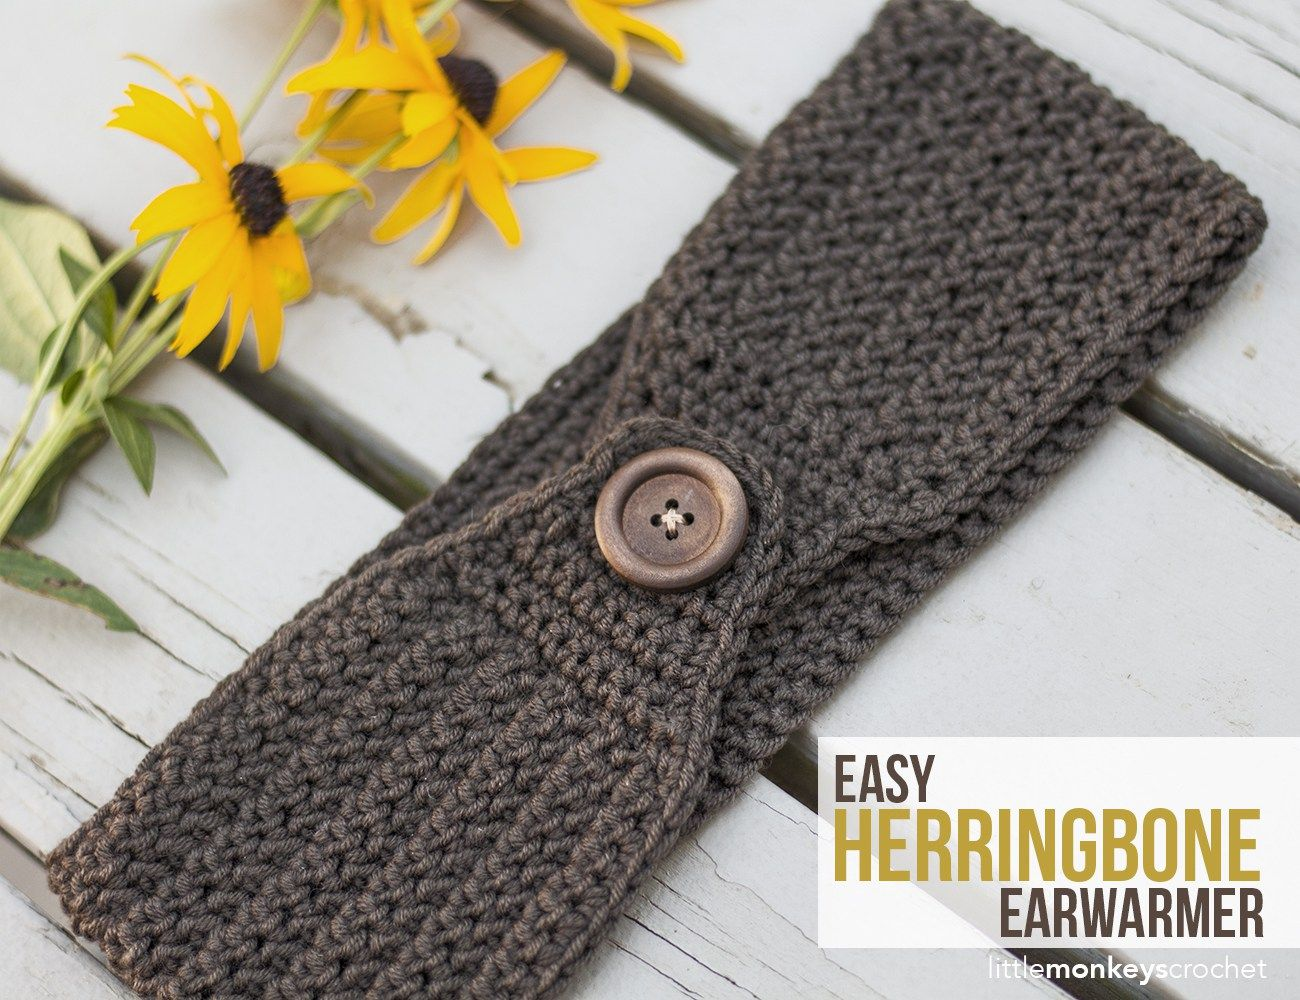 Herringbone earwarmer crochet pattern free button ear warmer herringbone earwarmer crochet pattern free button ear warmer pattern by little monkeys crochet bankloansurffo Choice Image